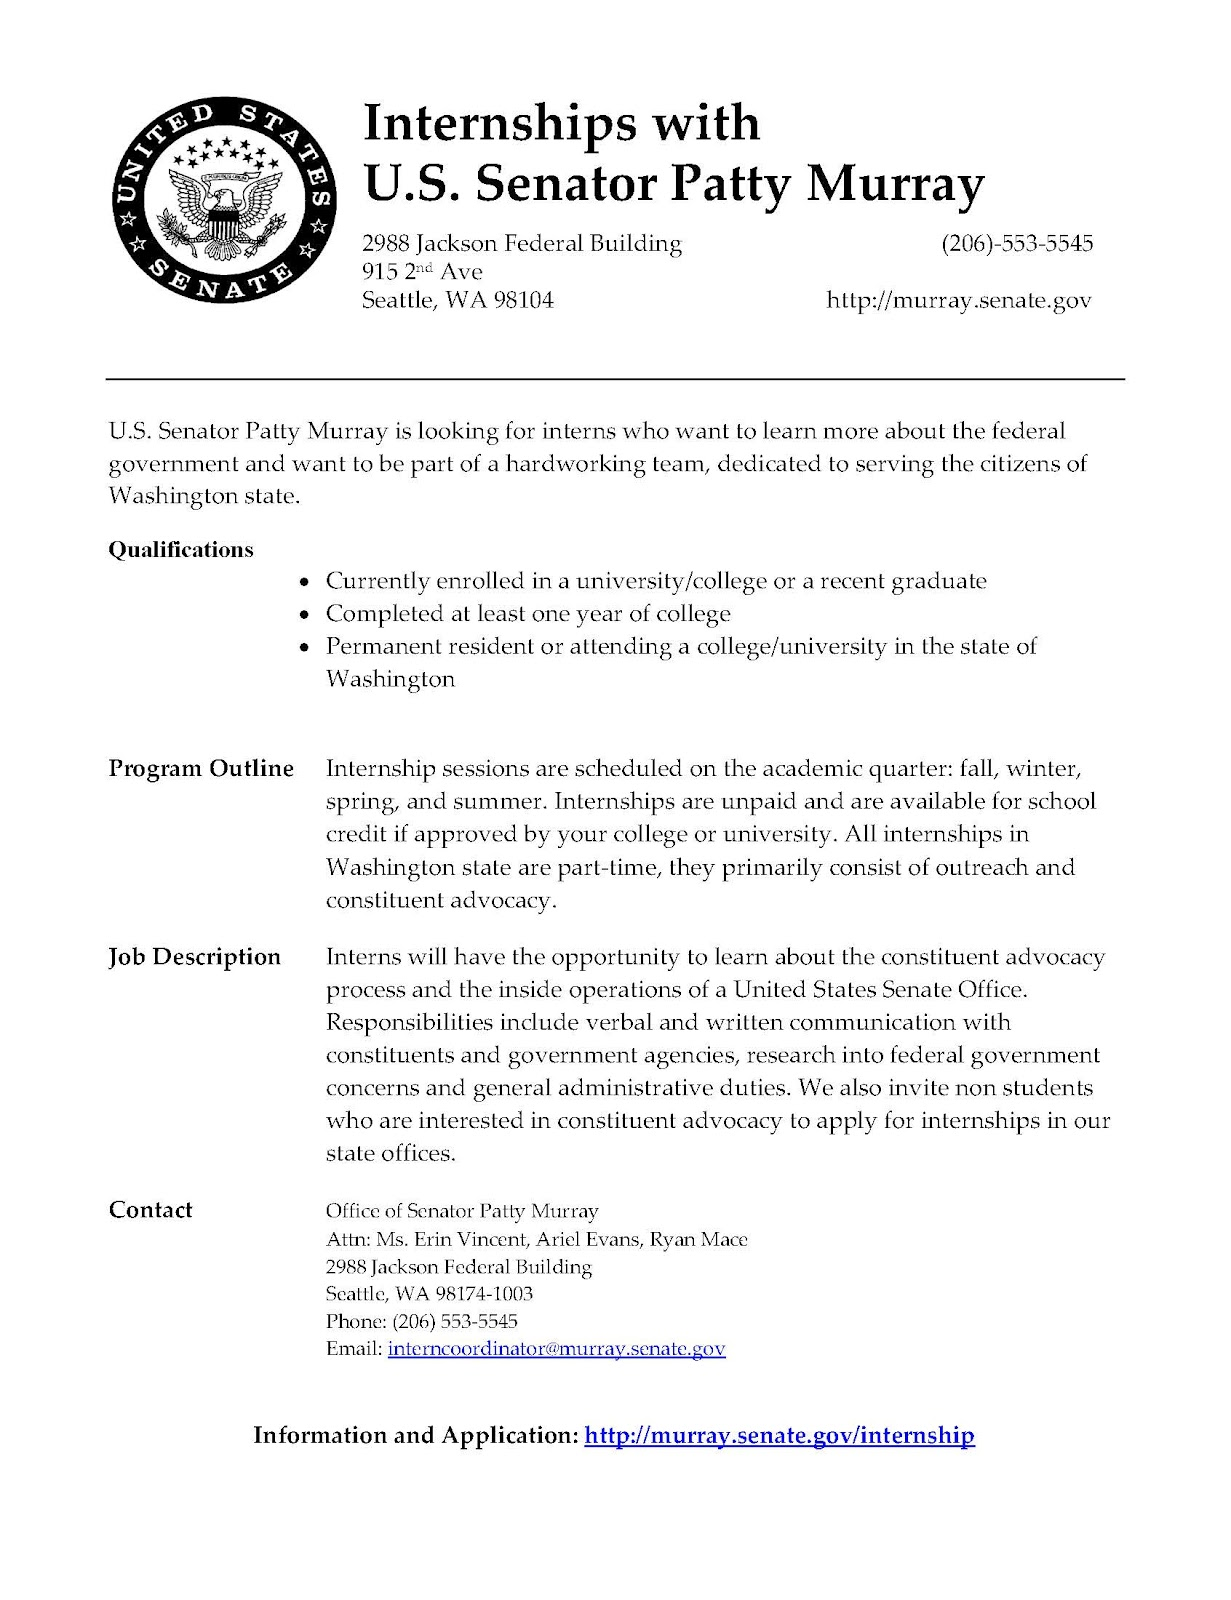 political internship cover letters